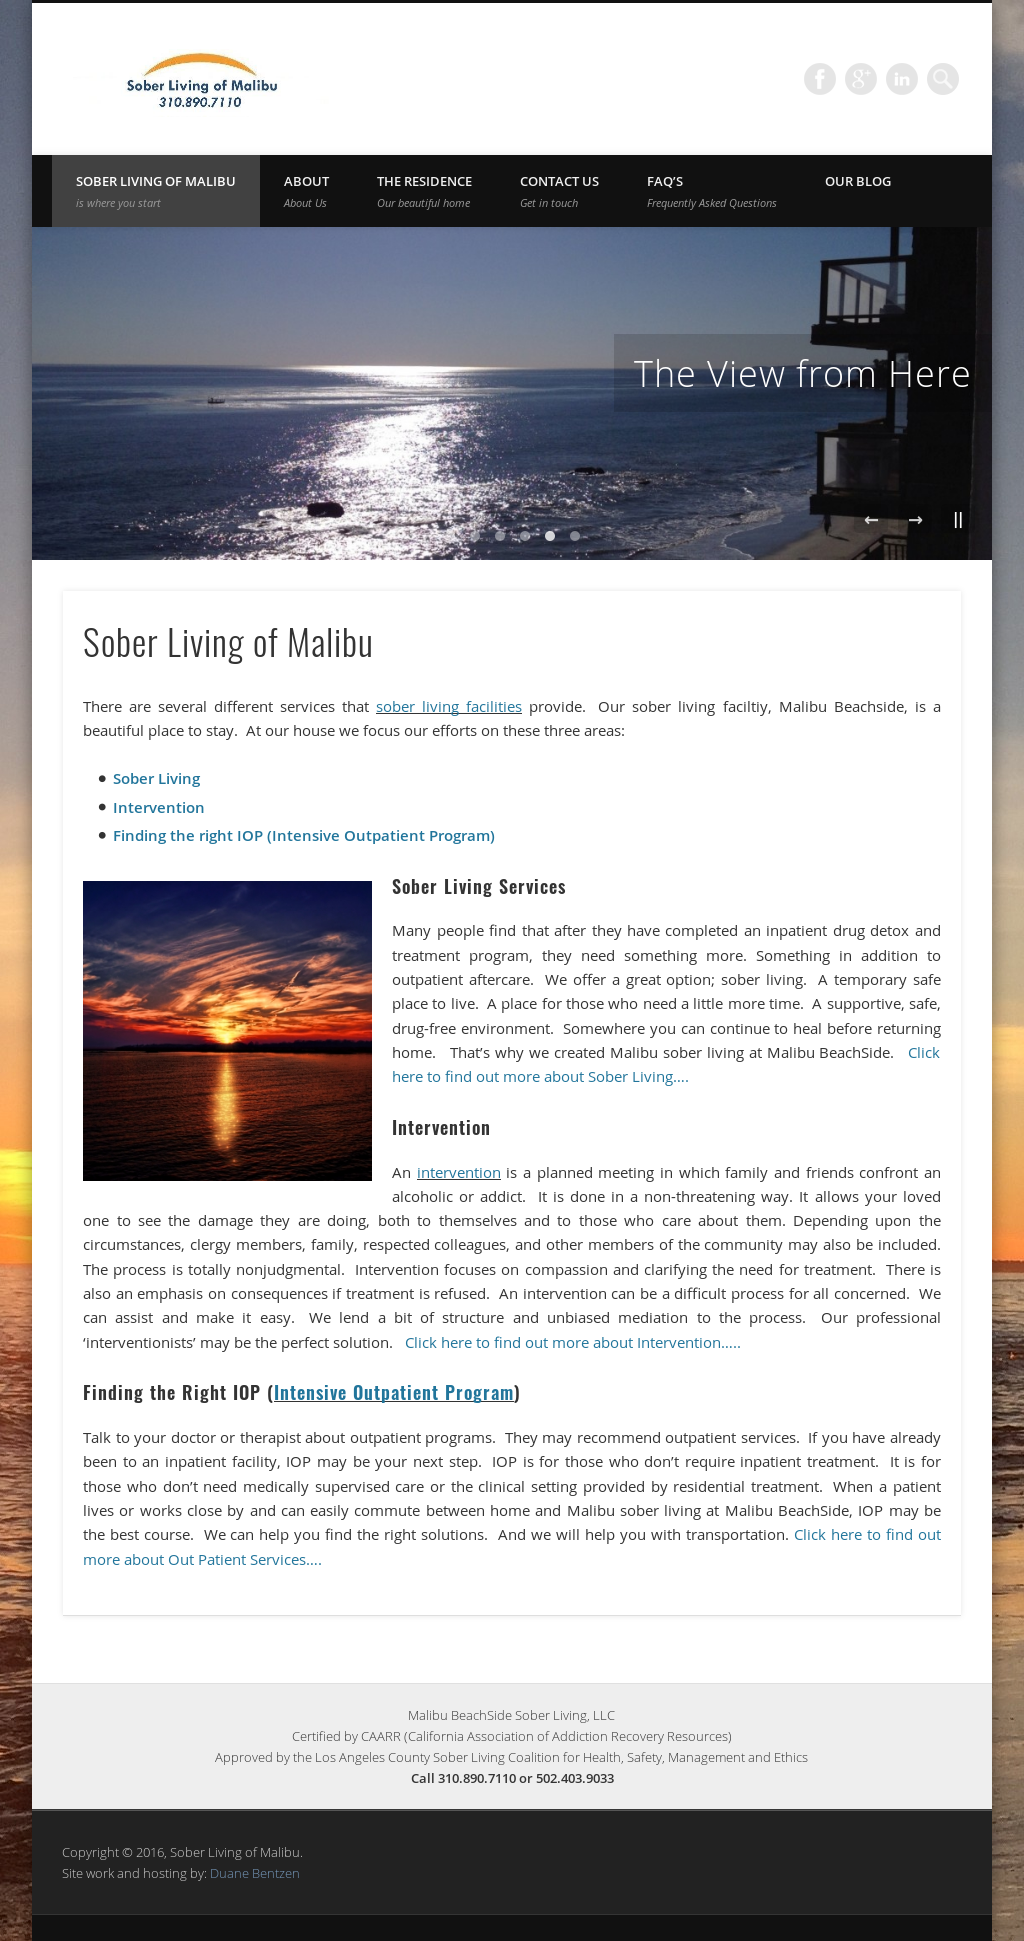 Malibu BeachSide Sober Living Website History